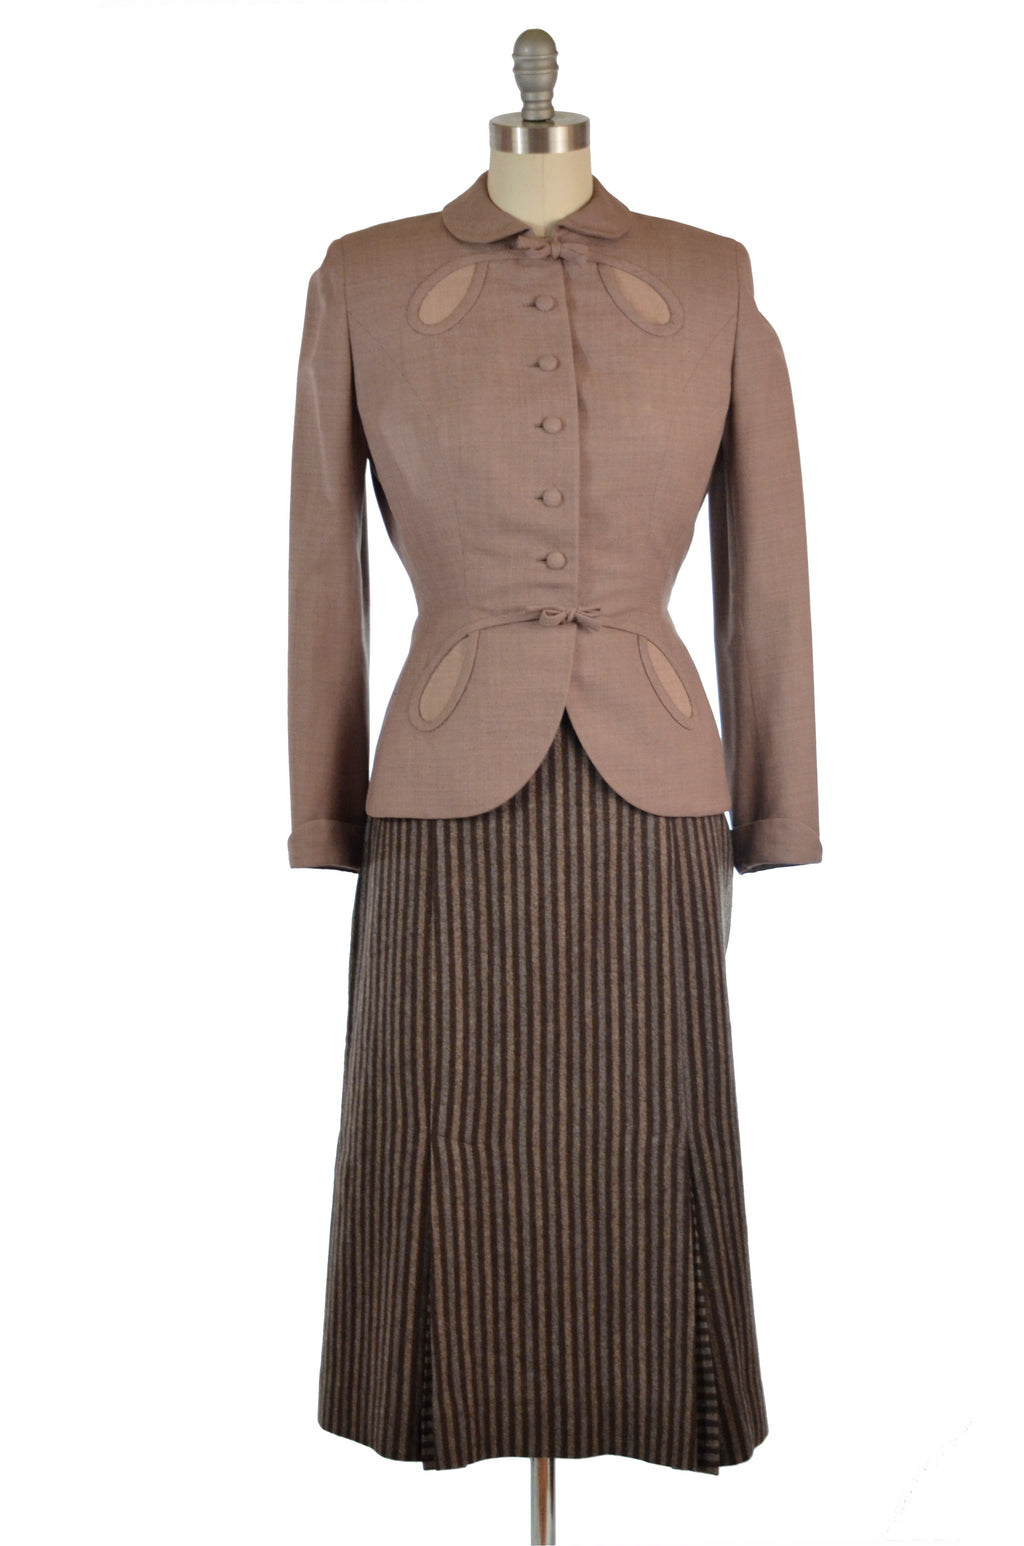 Smart 1950s Wool Skirt in Tri-Tone Stripes with Original Belt